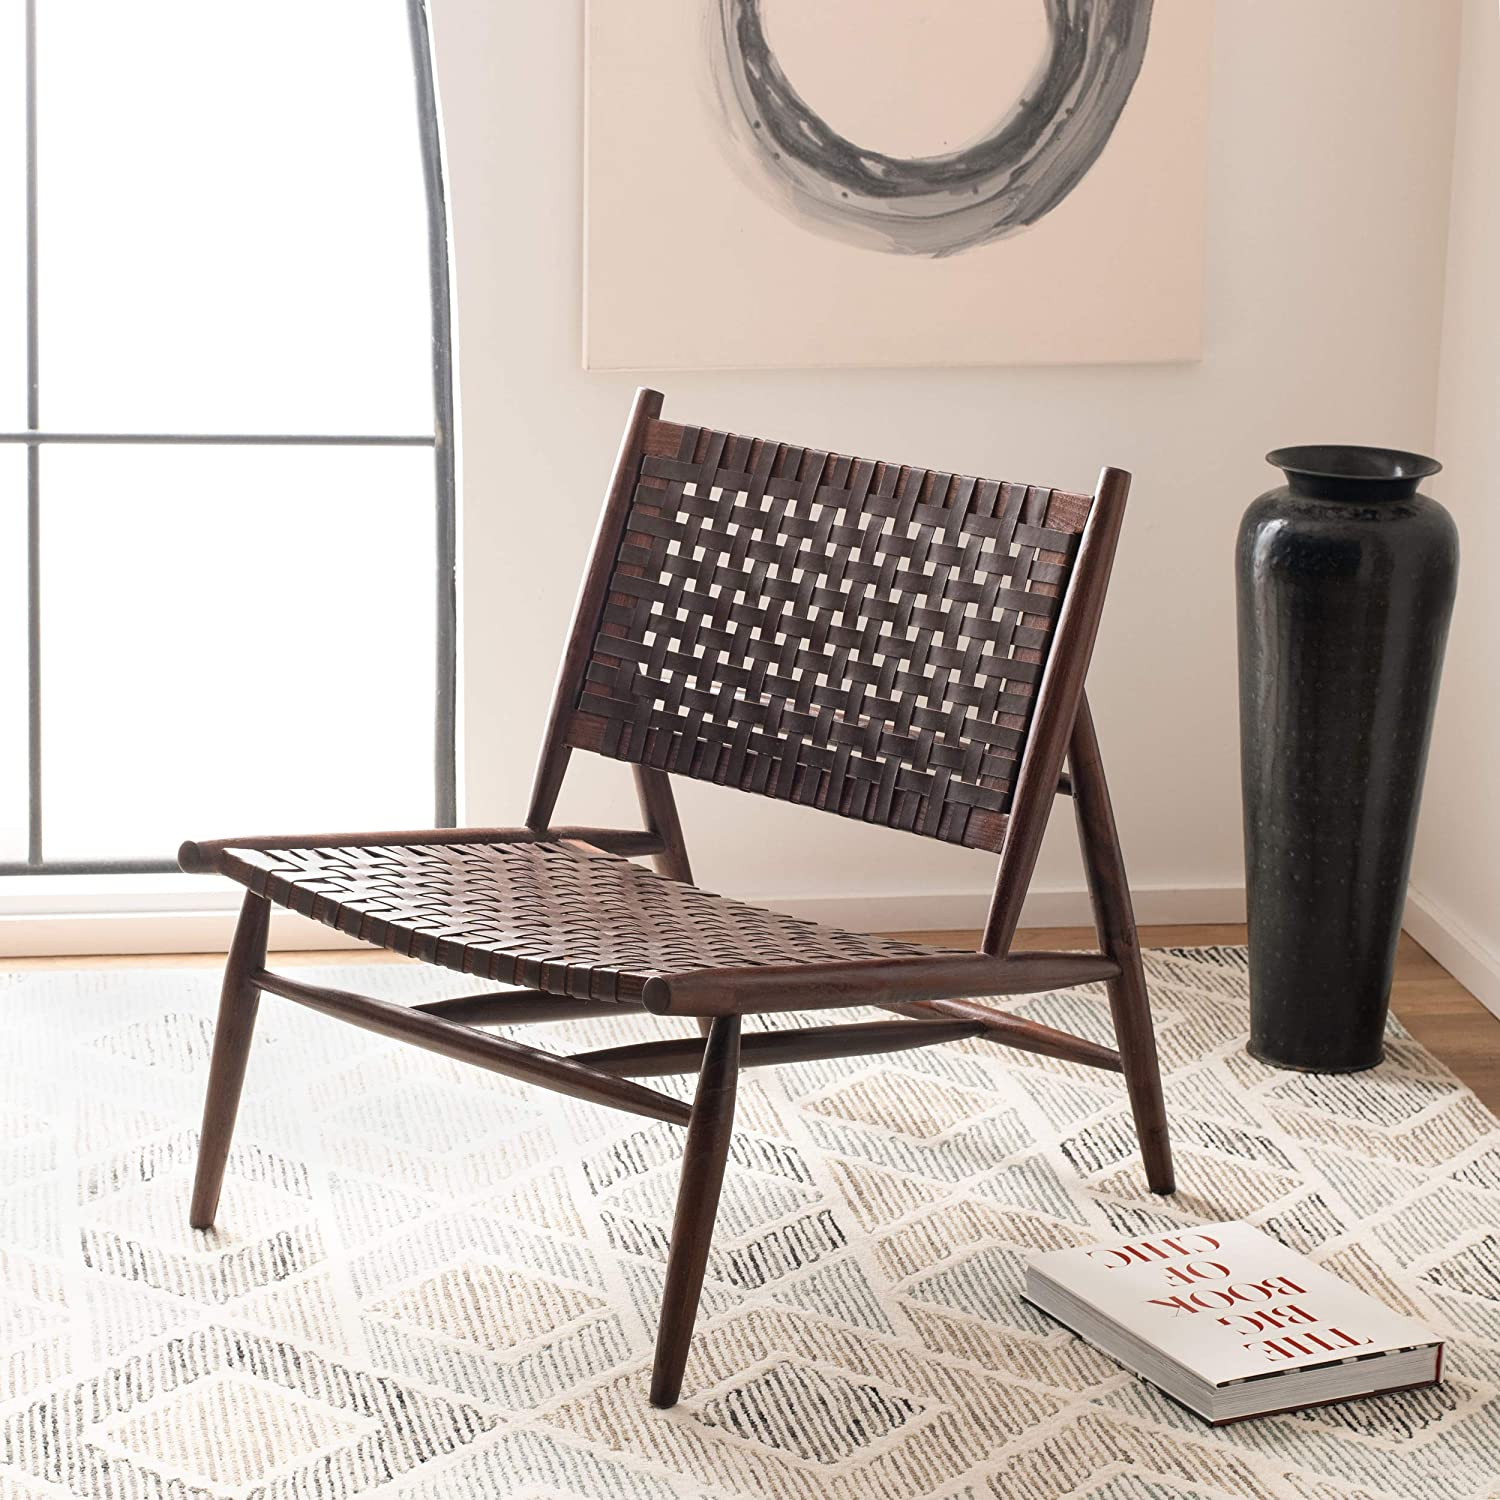 Safavieh Home Soleil Brown and Brown Leather Woven Accent Chair